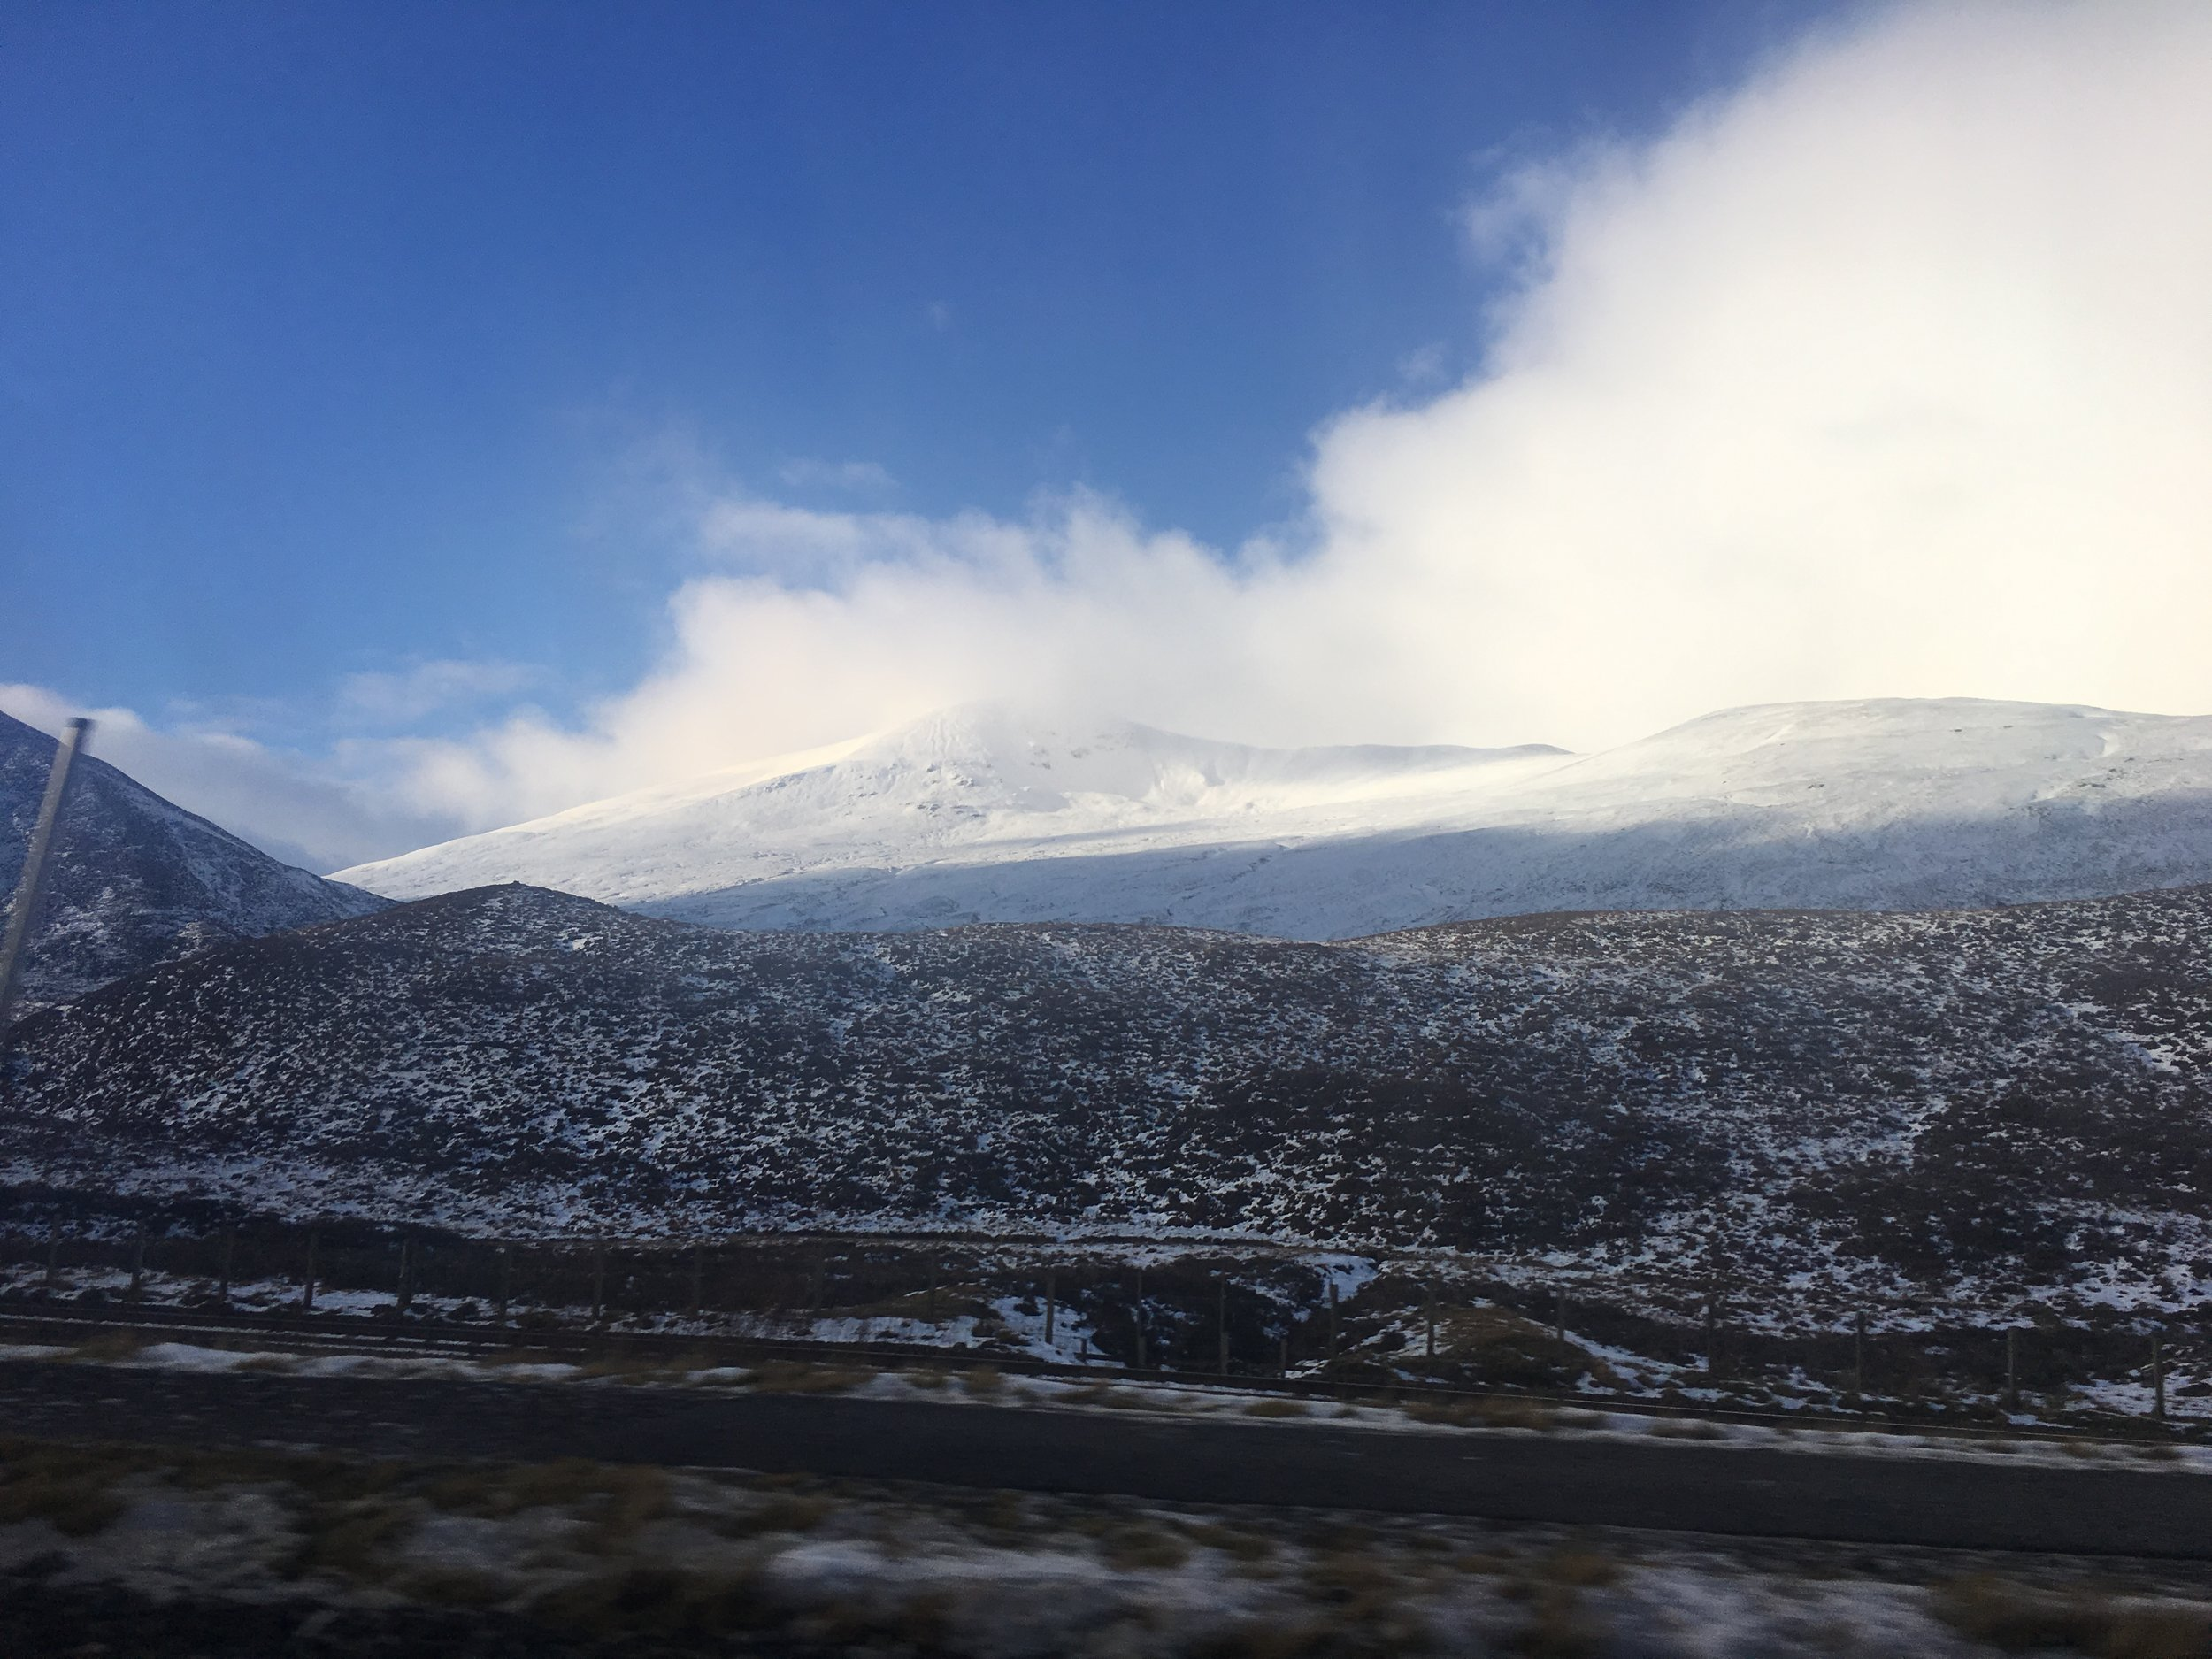 Driving North through the highlands.